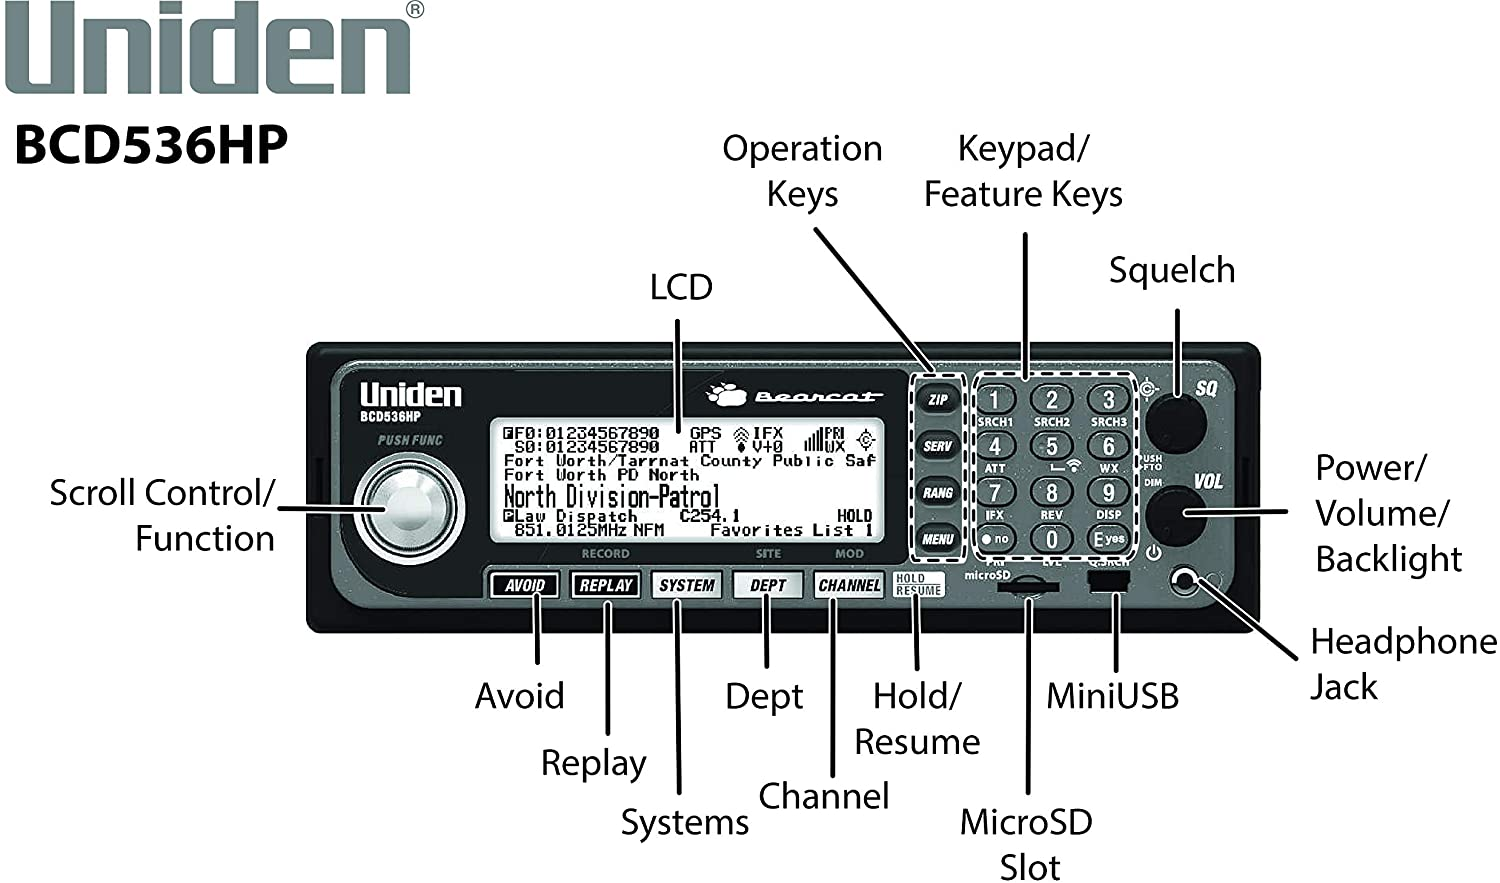 parts of a Uniden BCD536HP police scanner